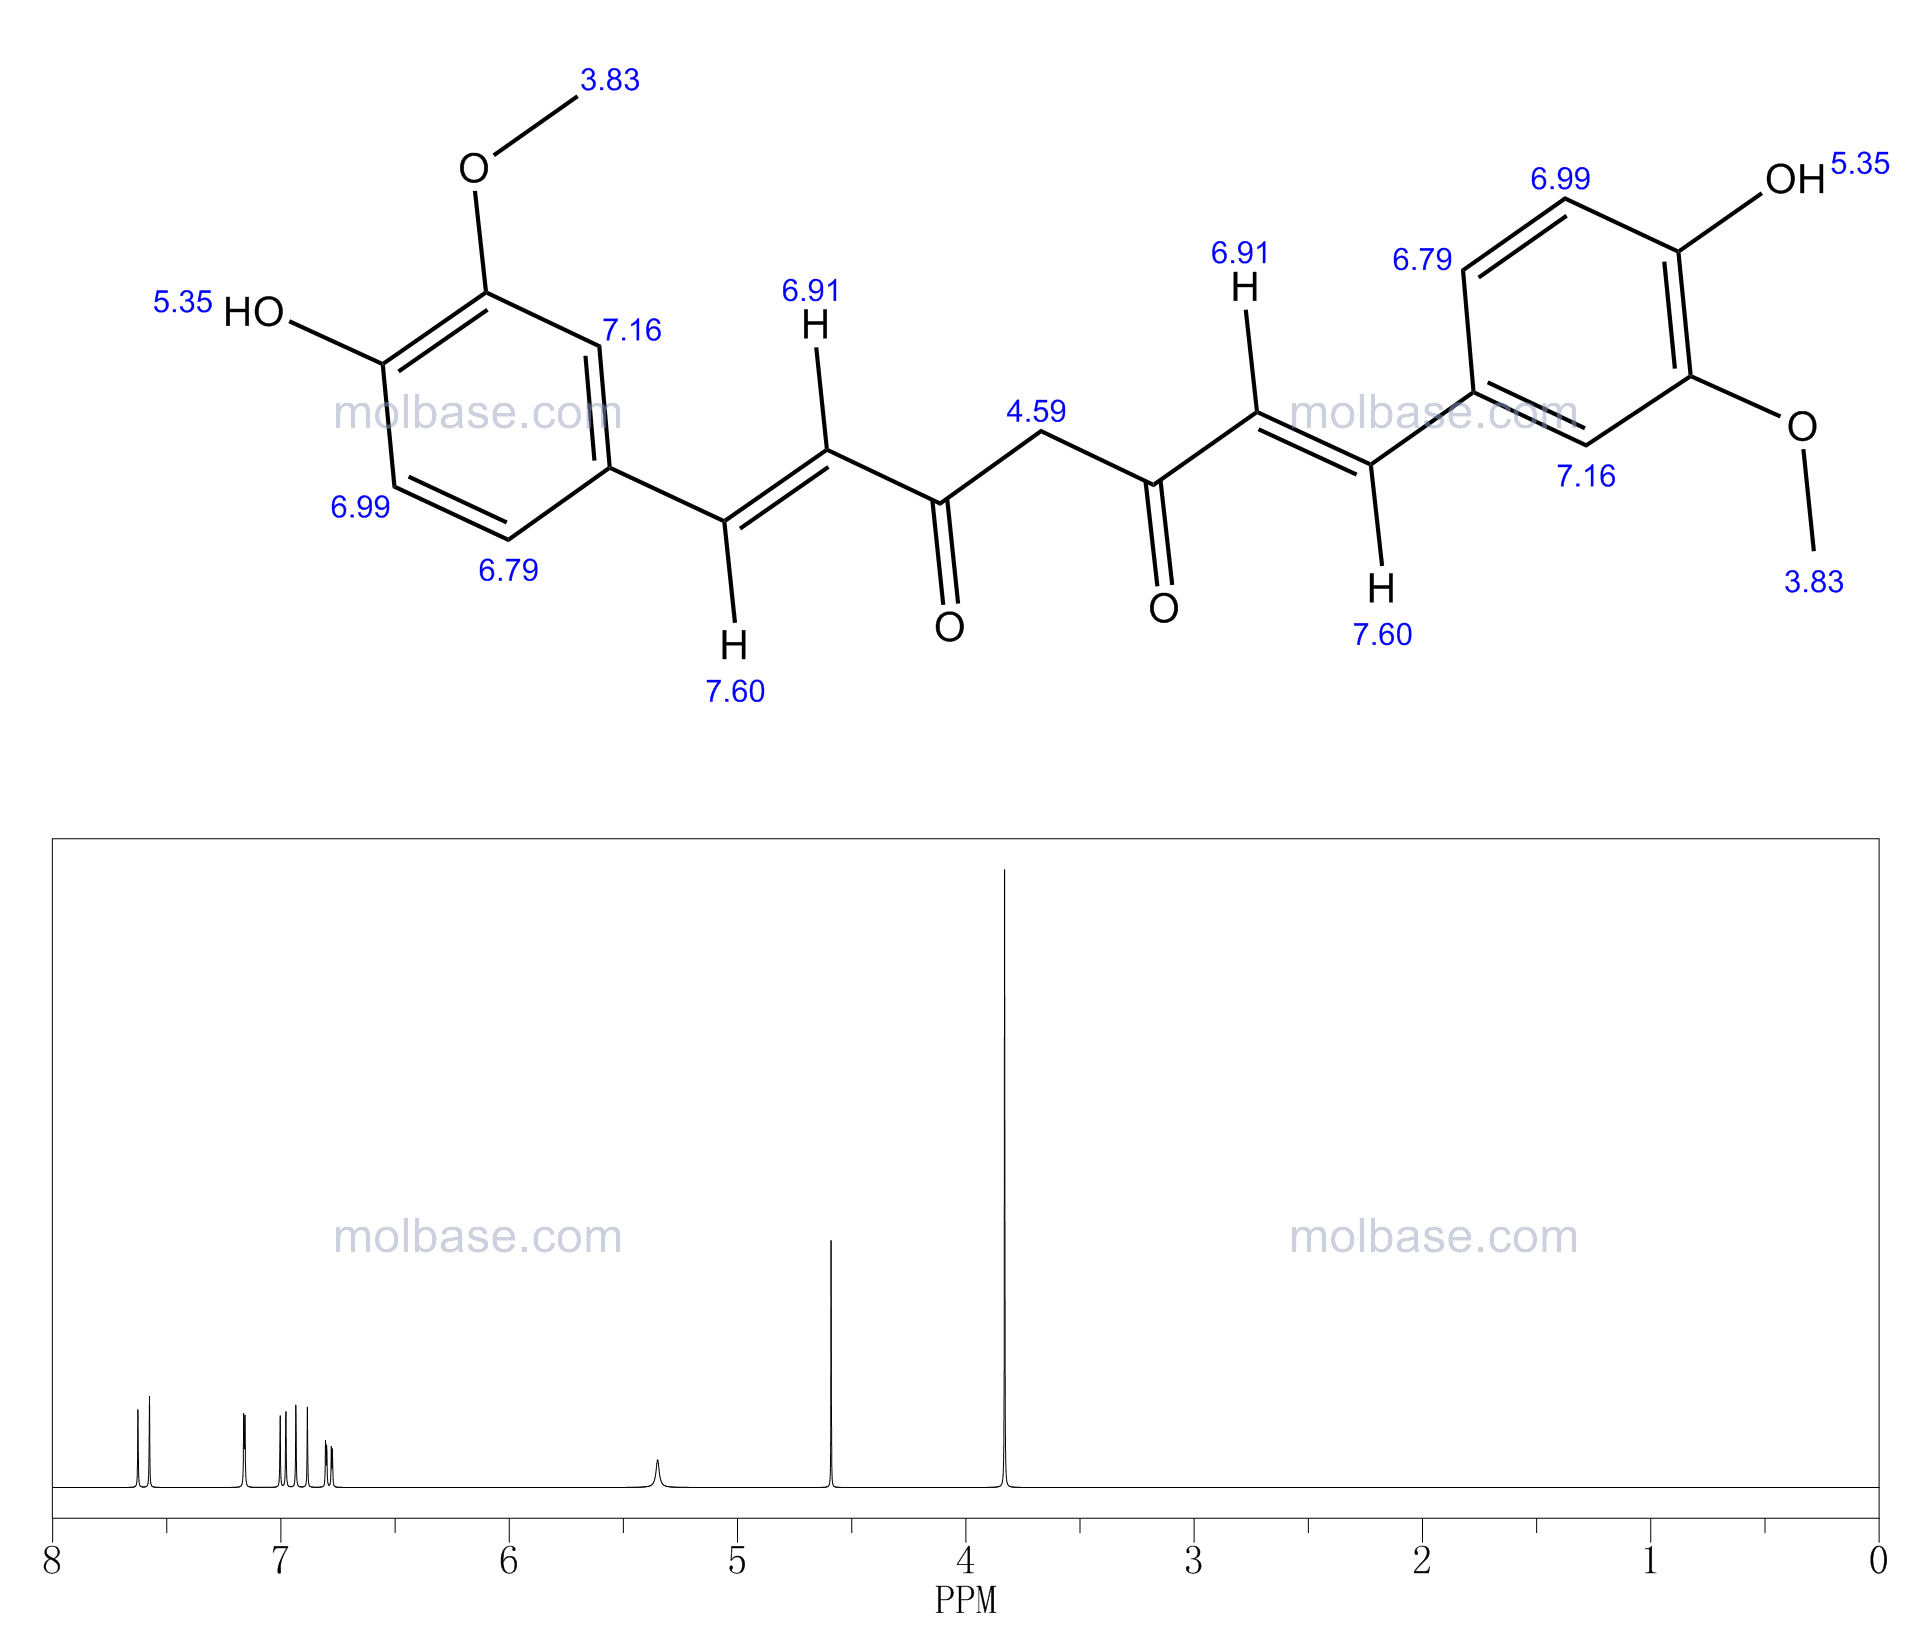 curcumin NMR spectra analysis, Chemical CAS NO. 458-37-7 NMR spectral analysis, curcumin C-NMR spectrum